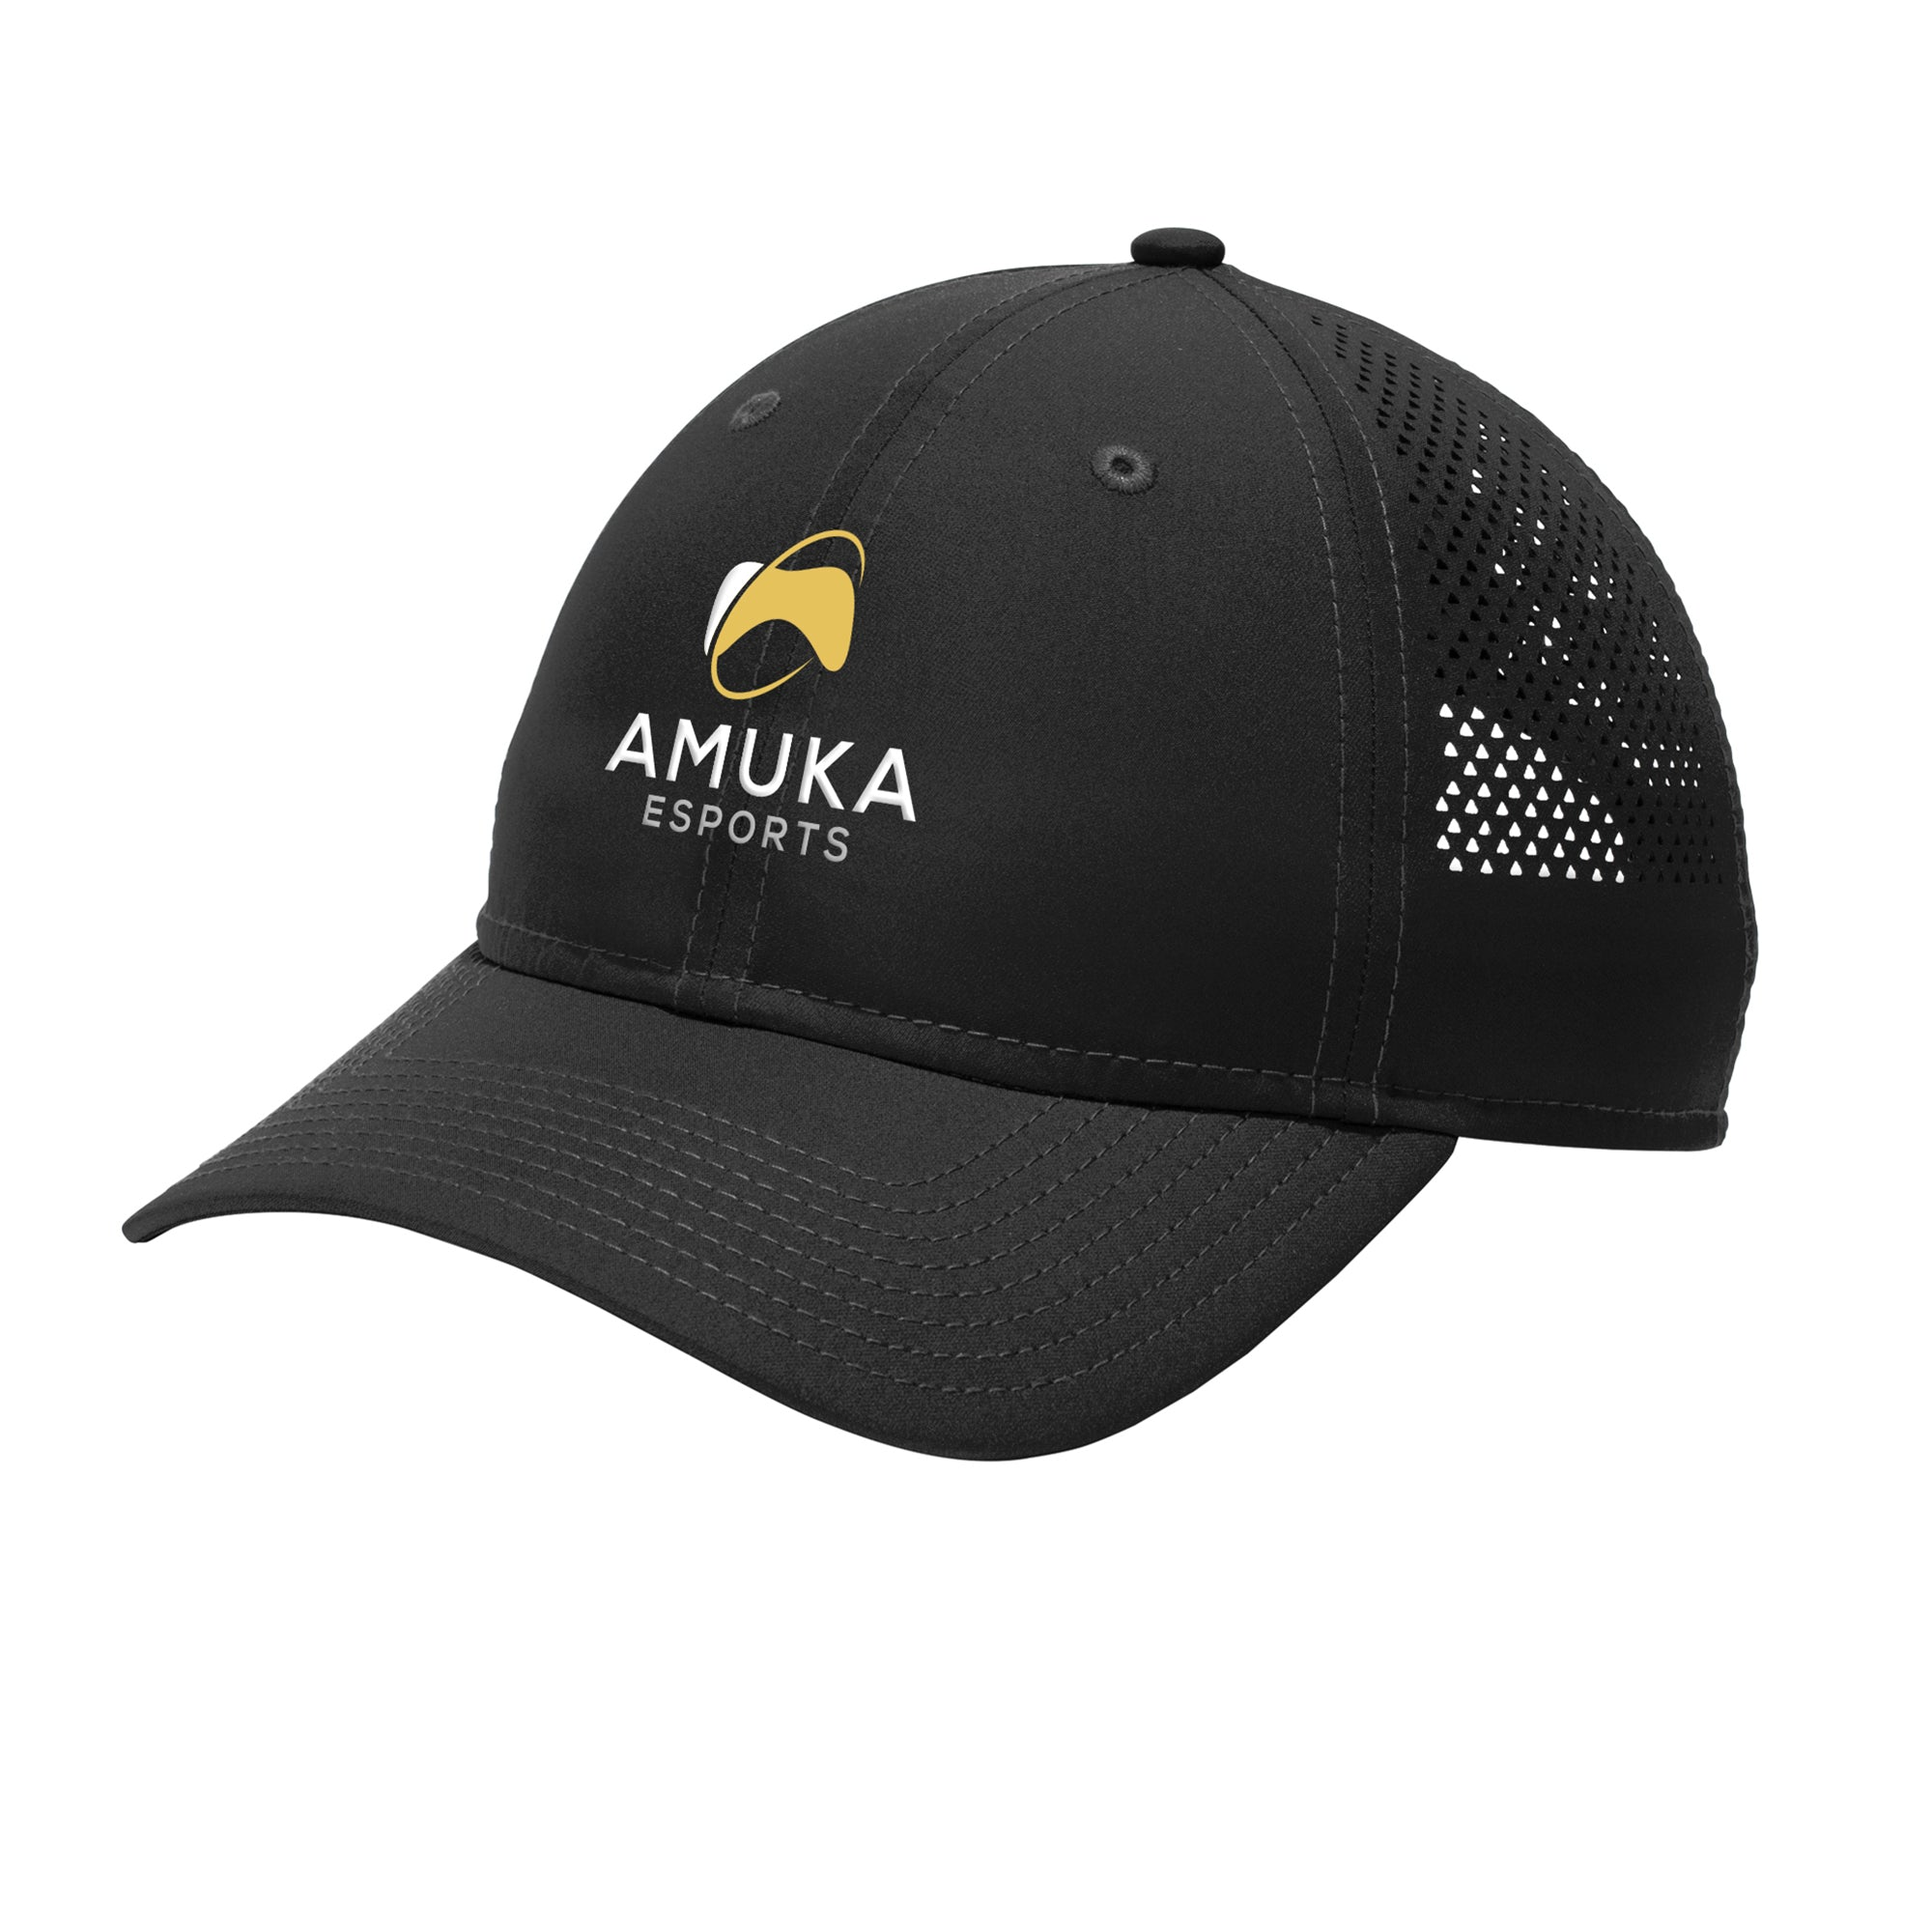 Amuka Esports New Era Performance Cap